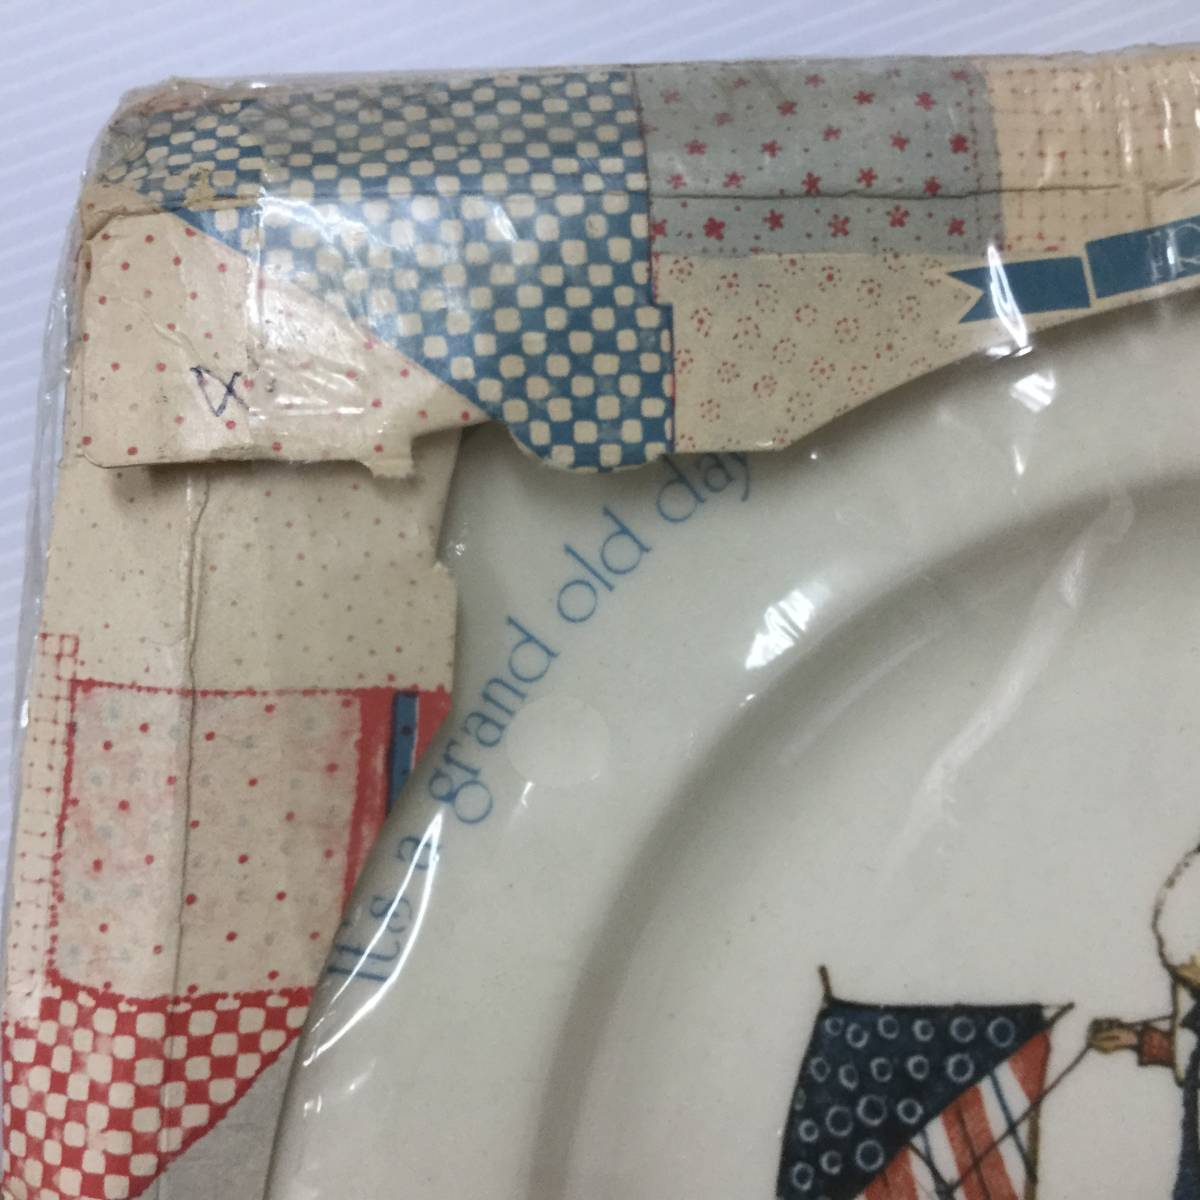 ■ARTBOOK_OUTLET■ 62-049 ★ 未開封 ホーリーホビー ヴィンテージ コレクター プレート 1974年 HOLLY HOBBIE VINTAGE COLLECTOR PLATE 3_画像6